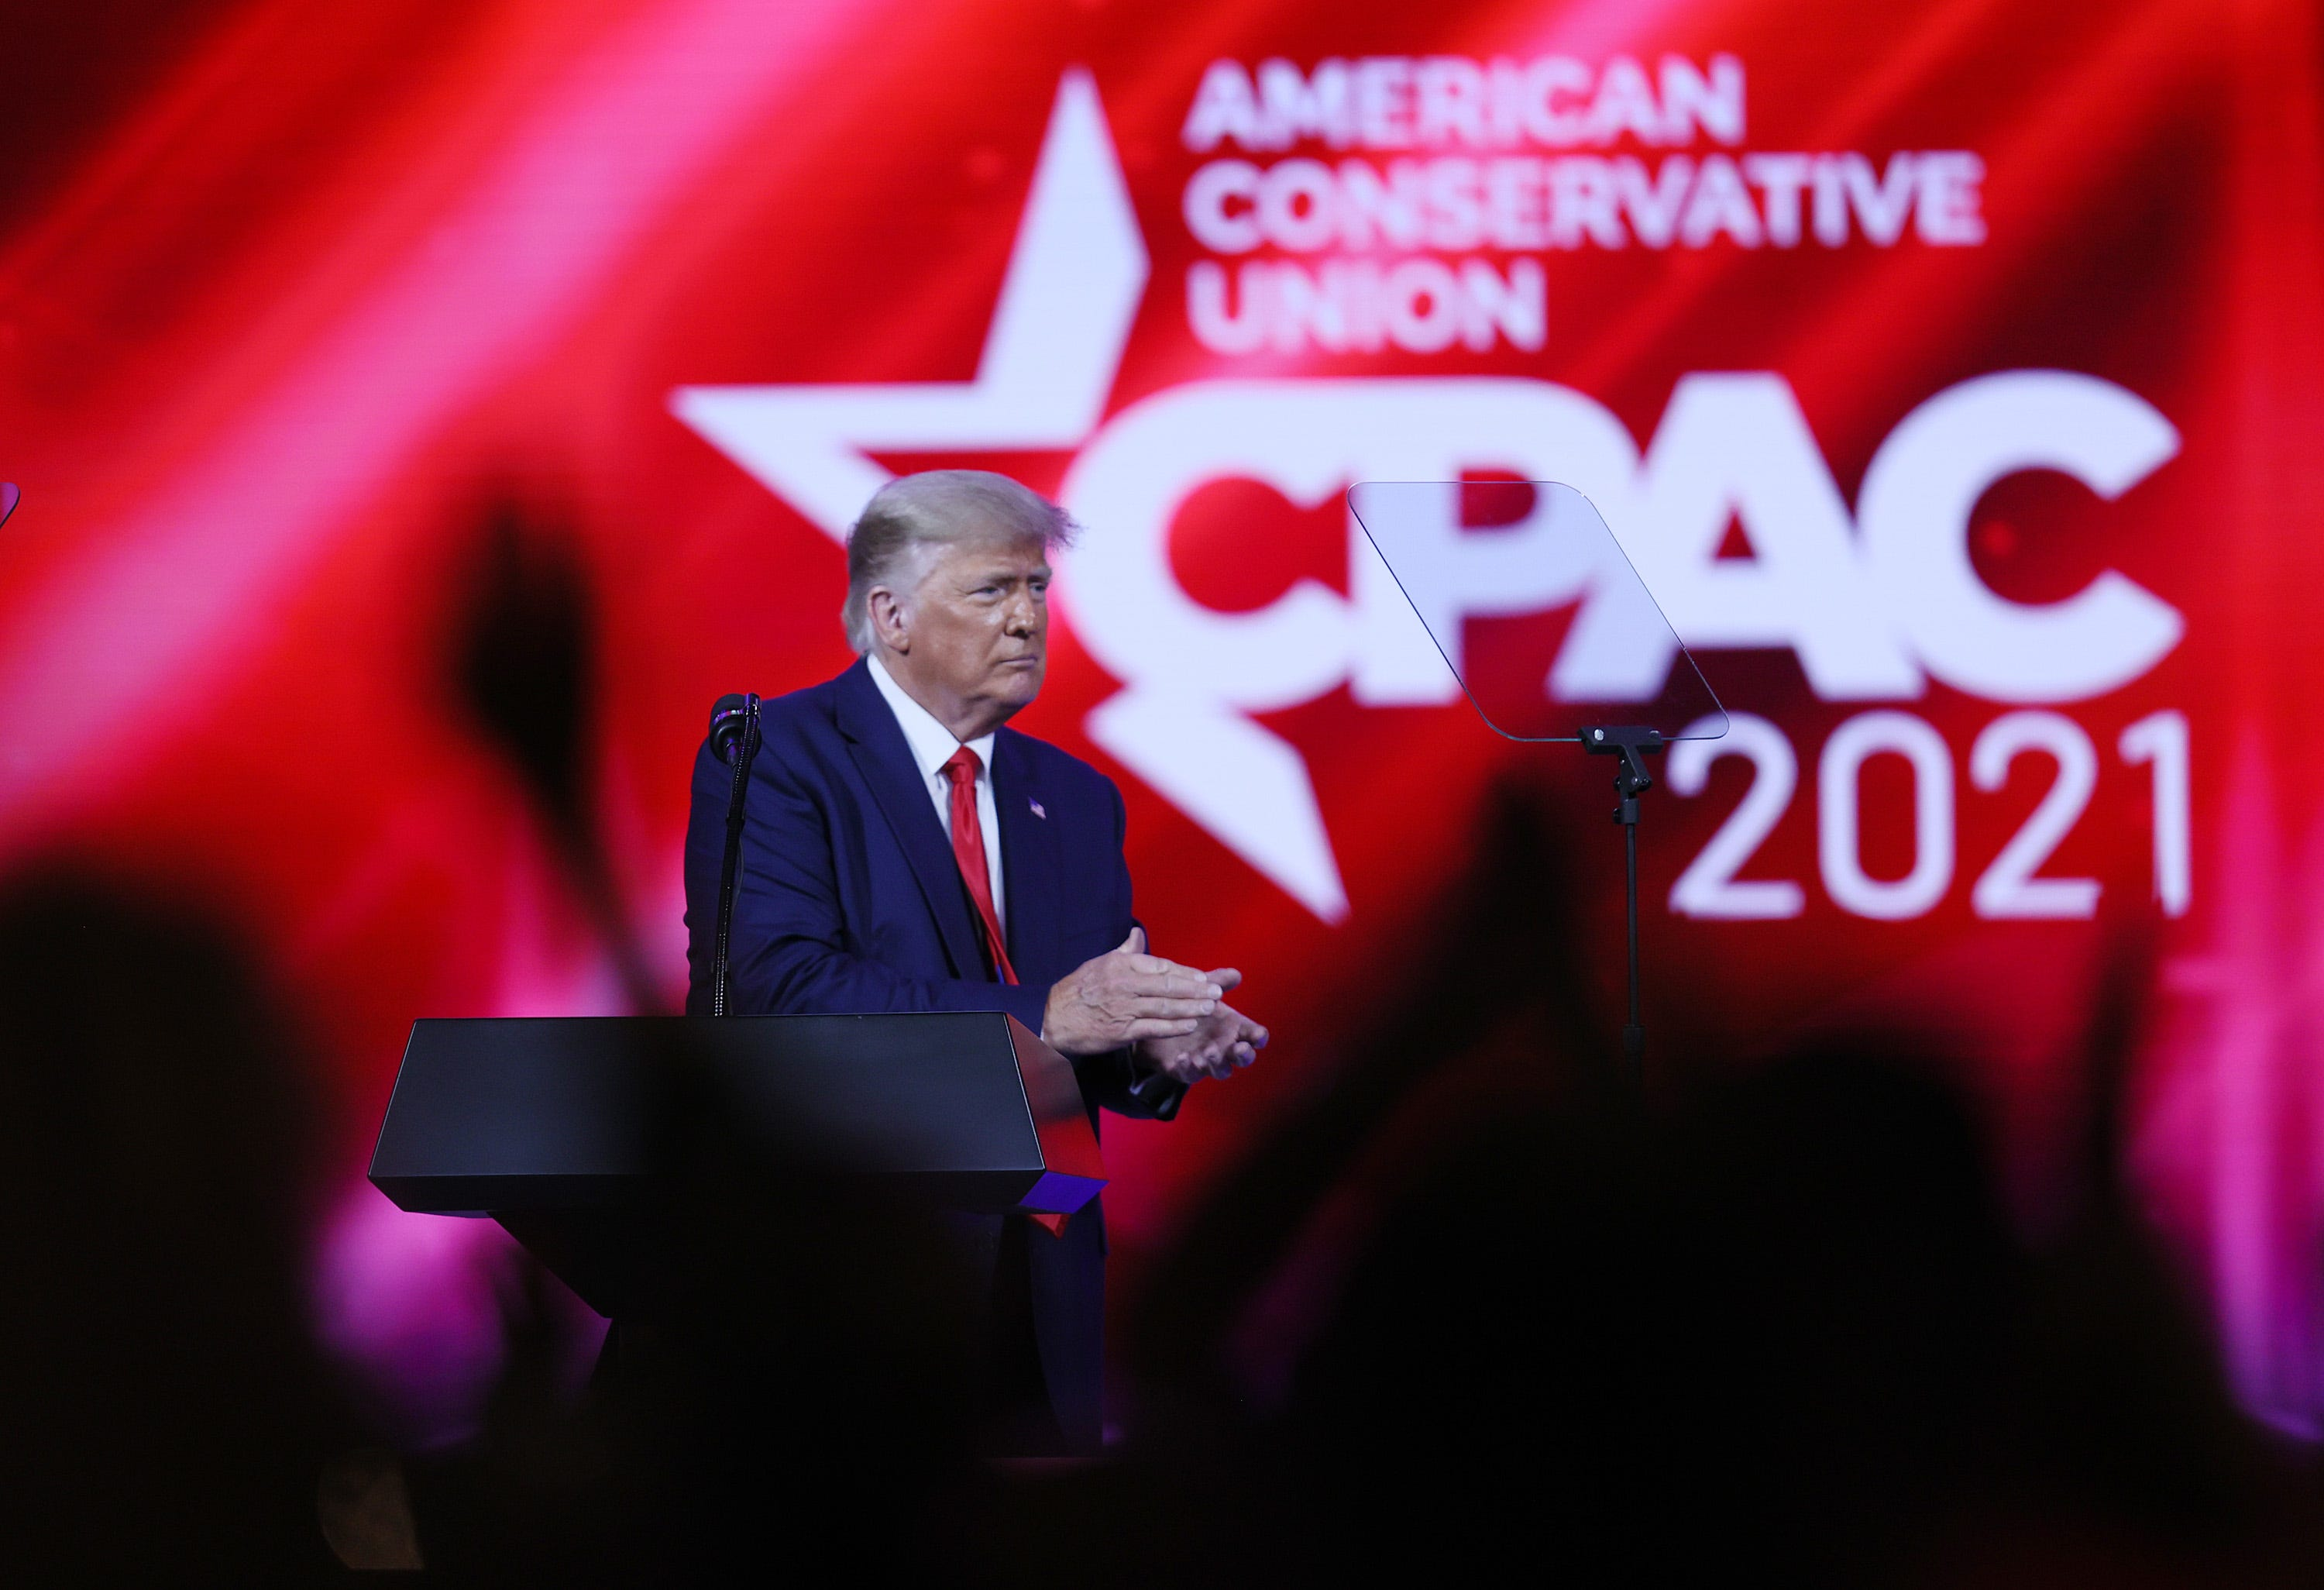 Nod or blunder? No CPAC 2021 apology for a stage shaped like a white supremacist symbol